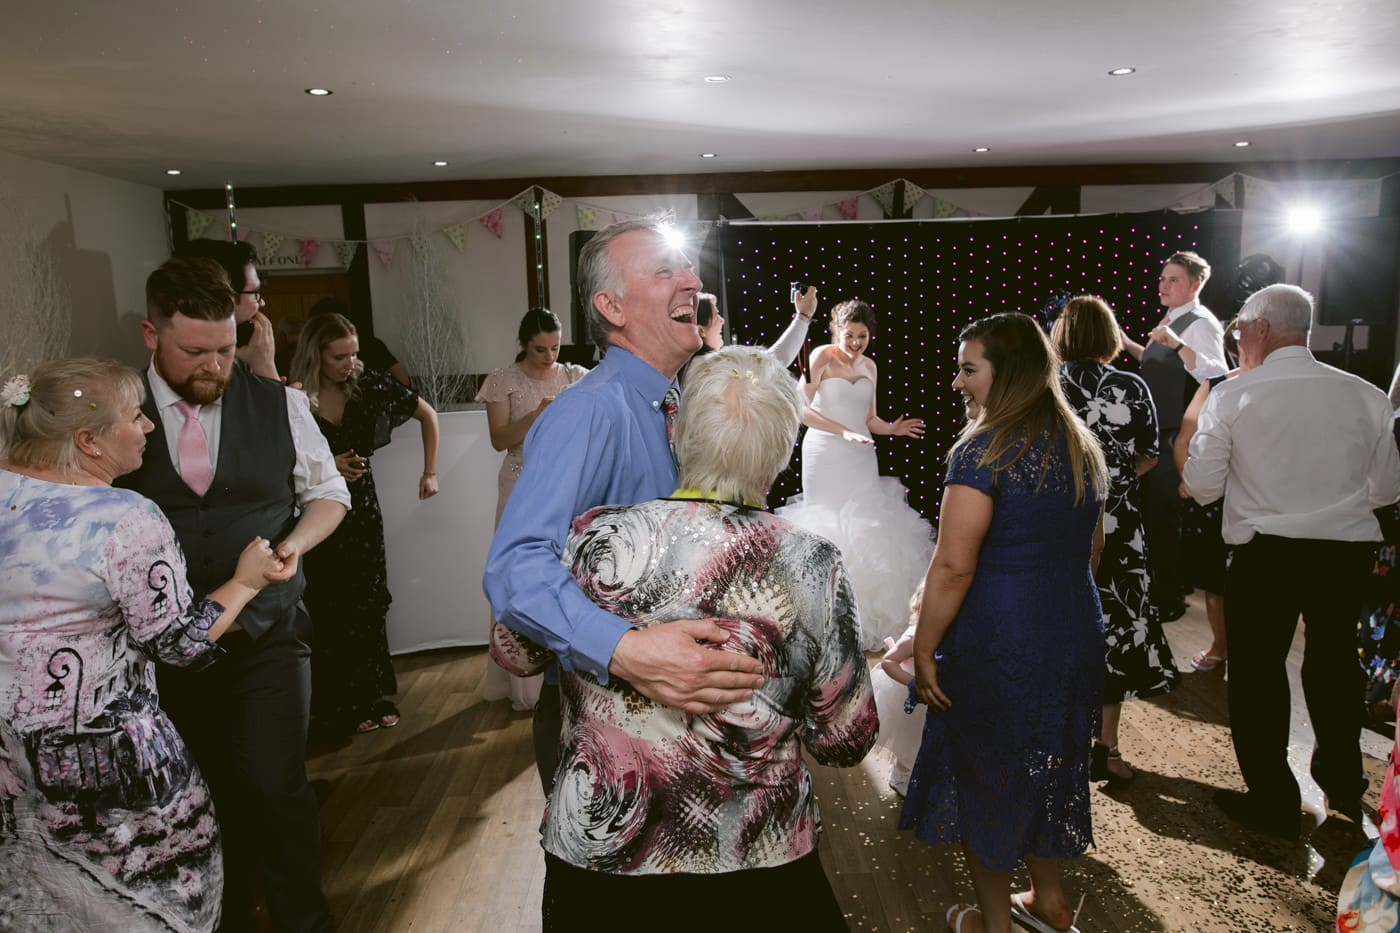 Older Couples Dance with Other Guests Photography